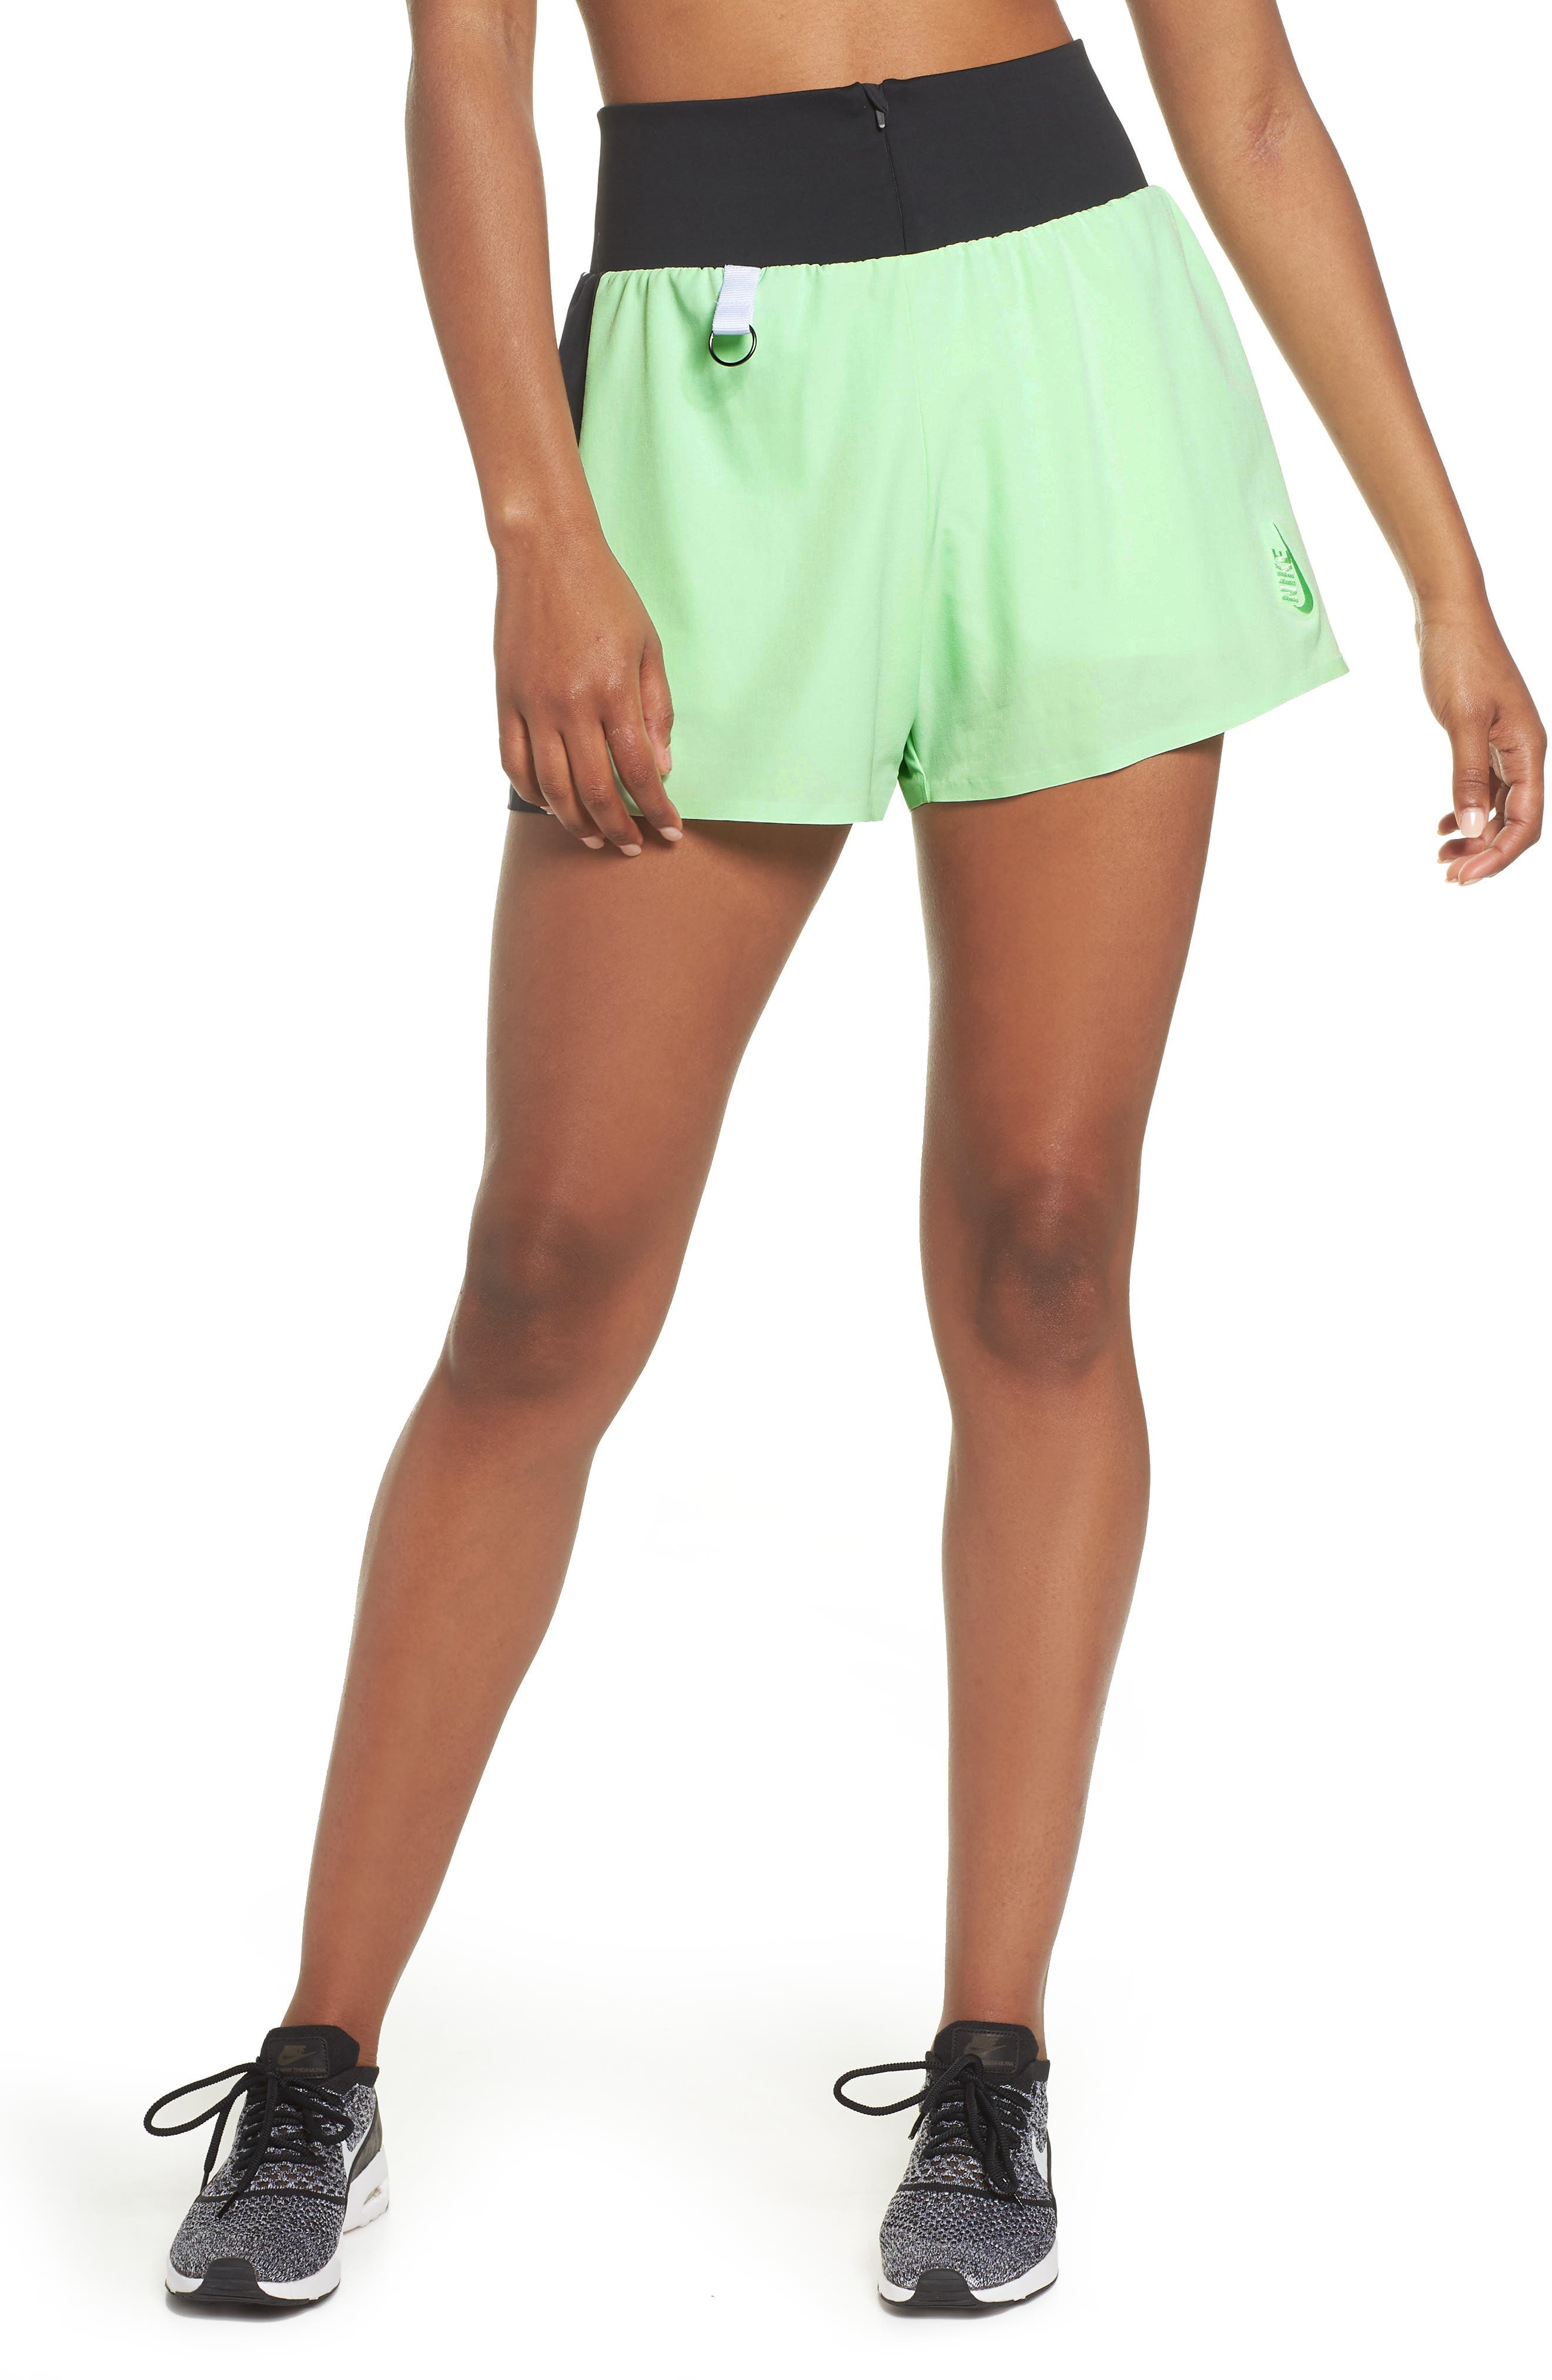 NRG Women's Dri-FIT Running Shorts,                         Main,                         color, VAPOR GREEN/ BLACK/ WHITE